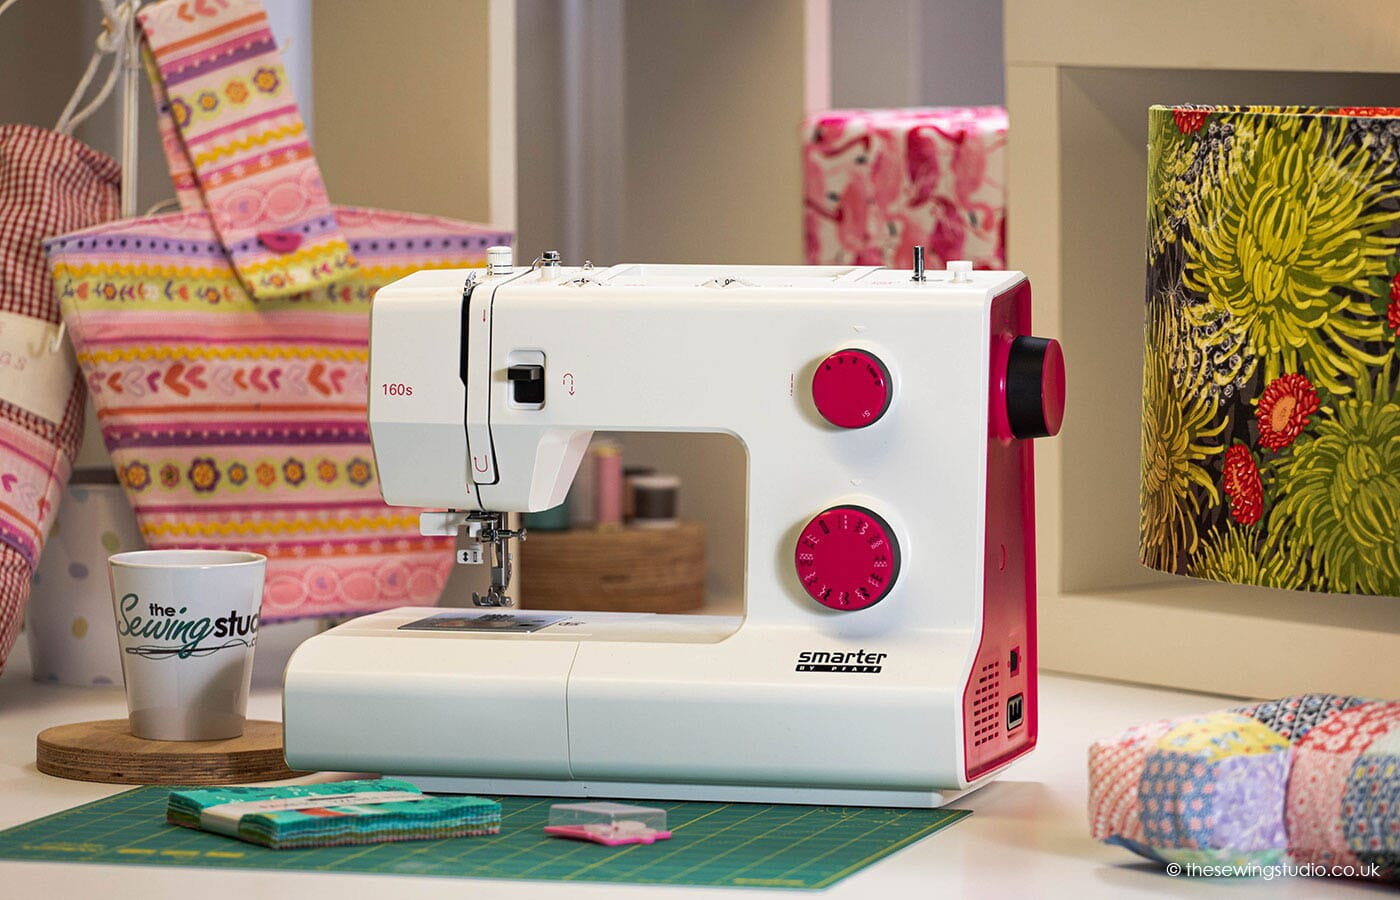 Pfaff Smarter 160s Sewing Machine in a Sewing Room